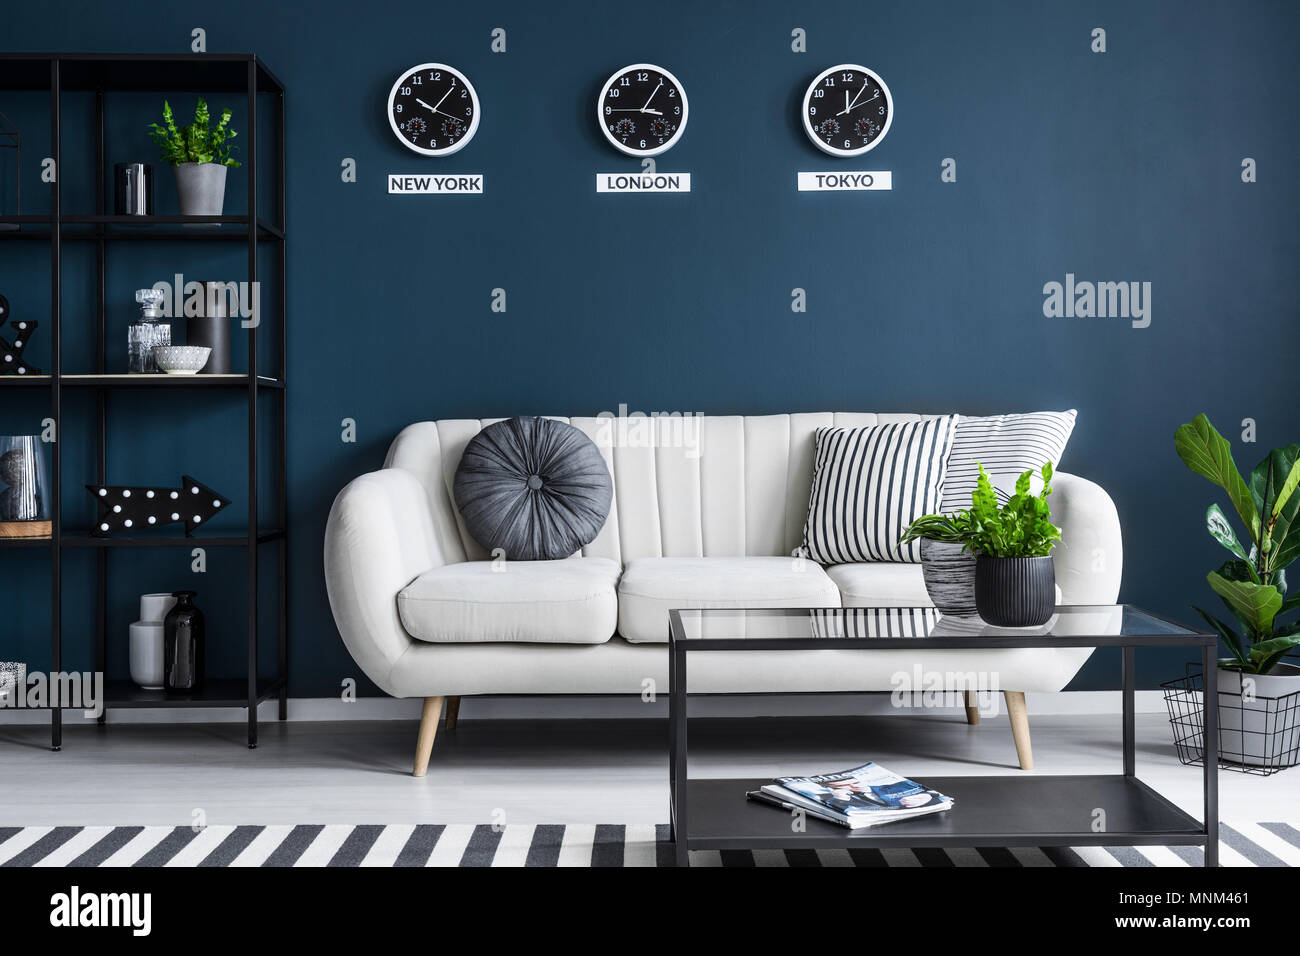 Incroyable Elegant Beige Sofa In A Dark, Navy Blue Living Room Interior With Black  Furniture And Stylish Decor